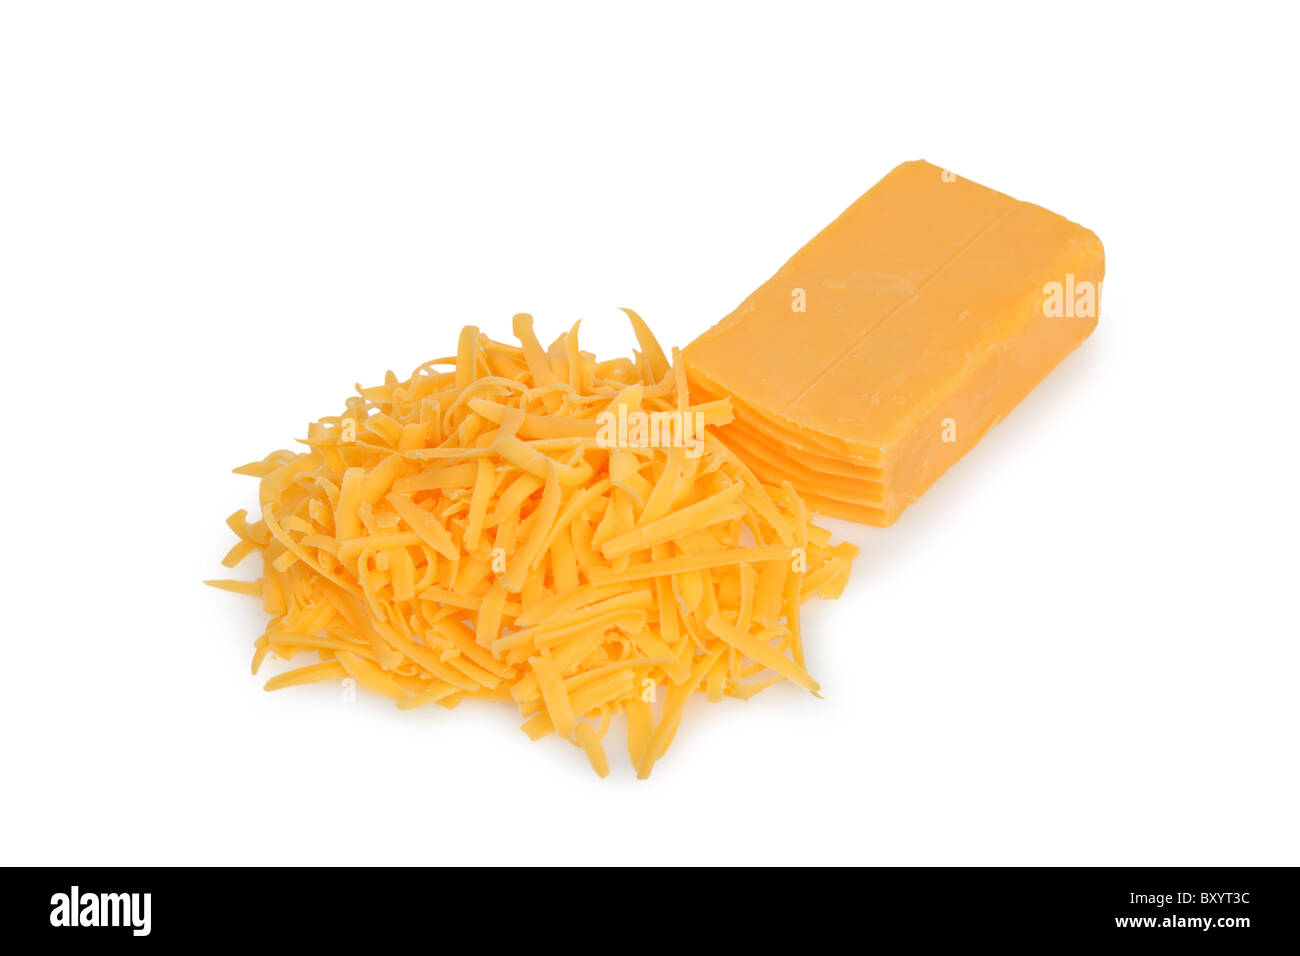 Grated cheddar cheese on white background - Stock Image